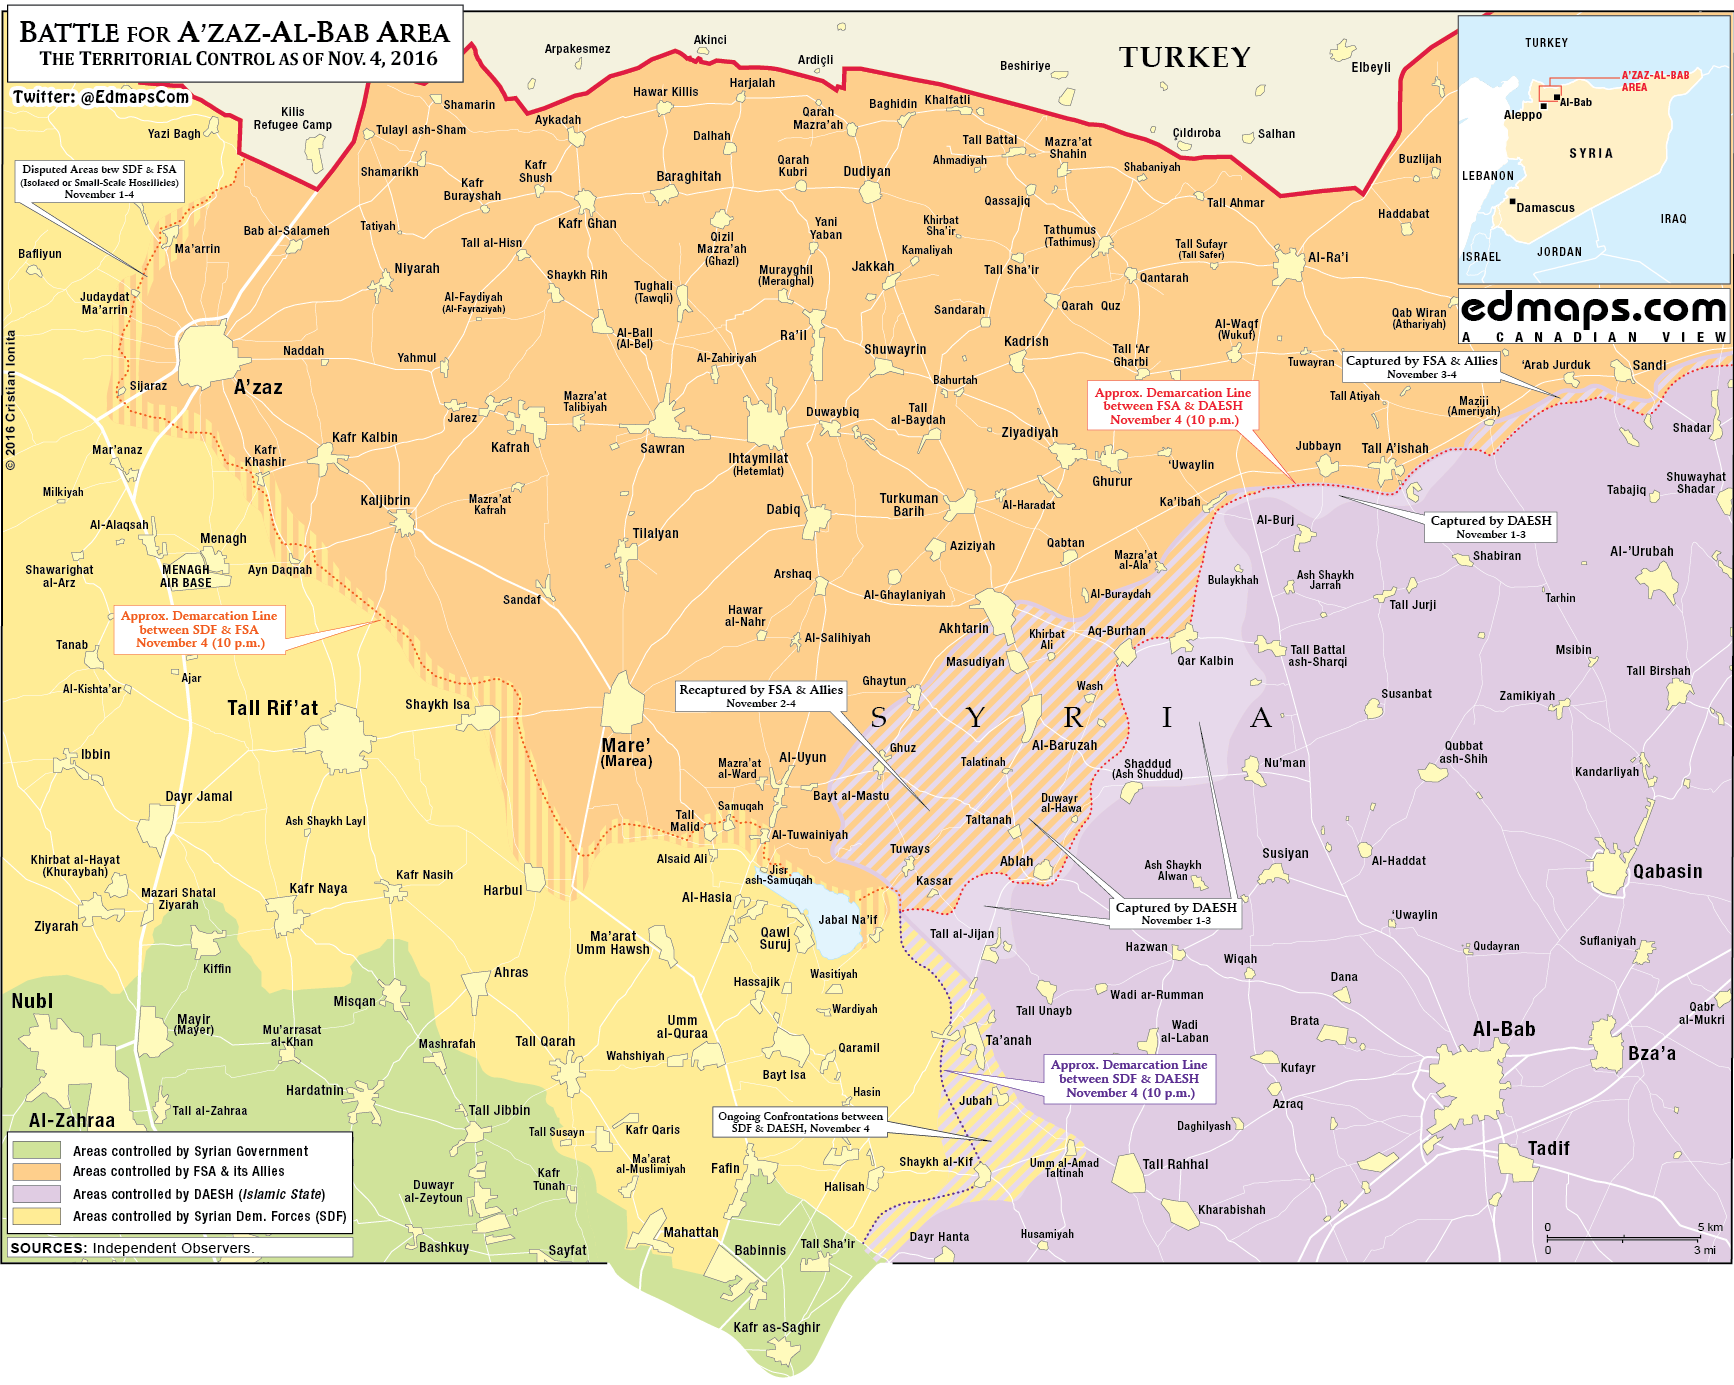 War Map Military Situation in Northeast of Aleppo City on November 4